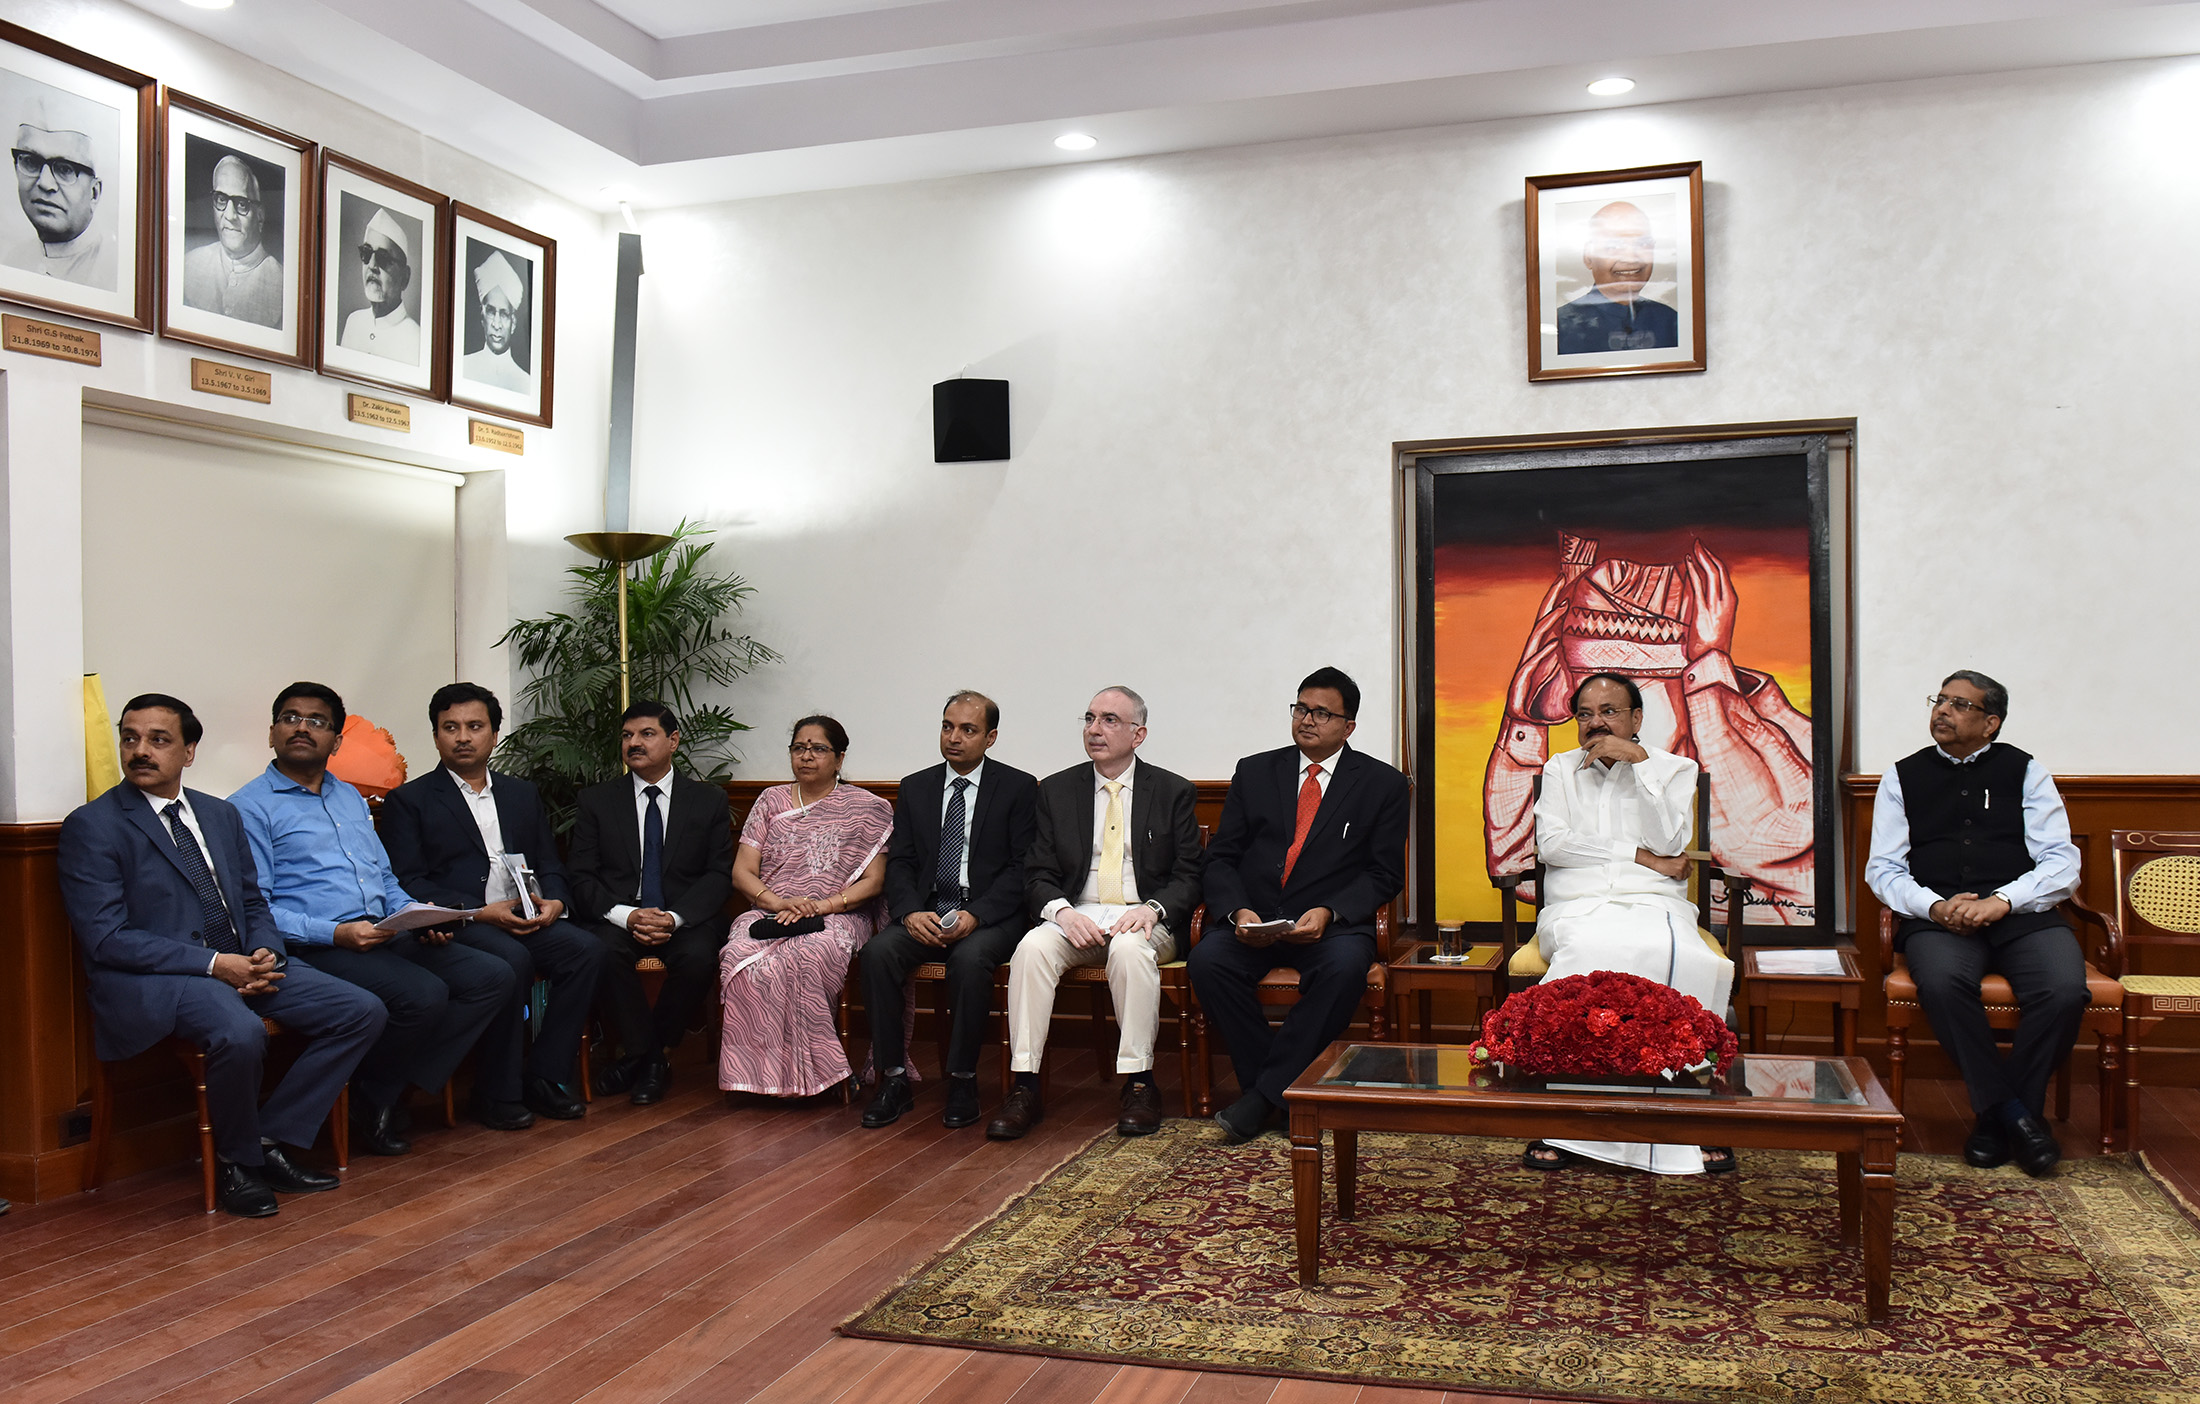 The Vice President, Shri M. Venkaiah Naidu at an event to interact with the 44th batch of Advance Professional Programme in Public Administration, sponsored by the Indian Institute of Public Administration, in New Delhi on April 15, 2019.